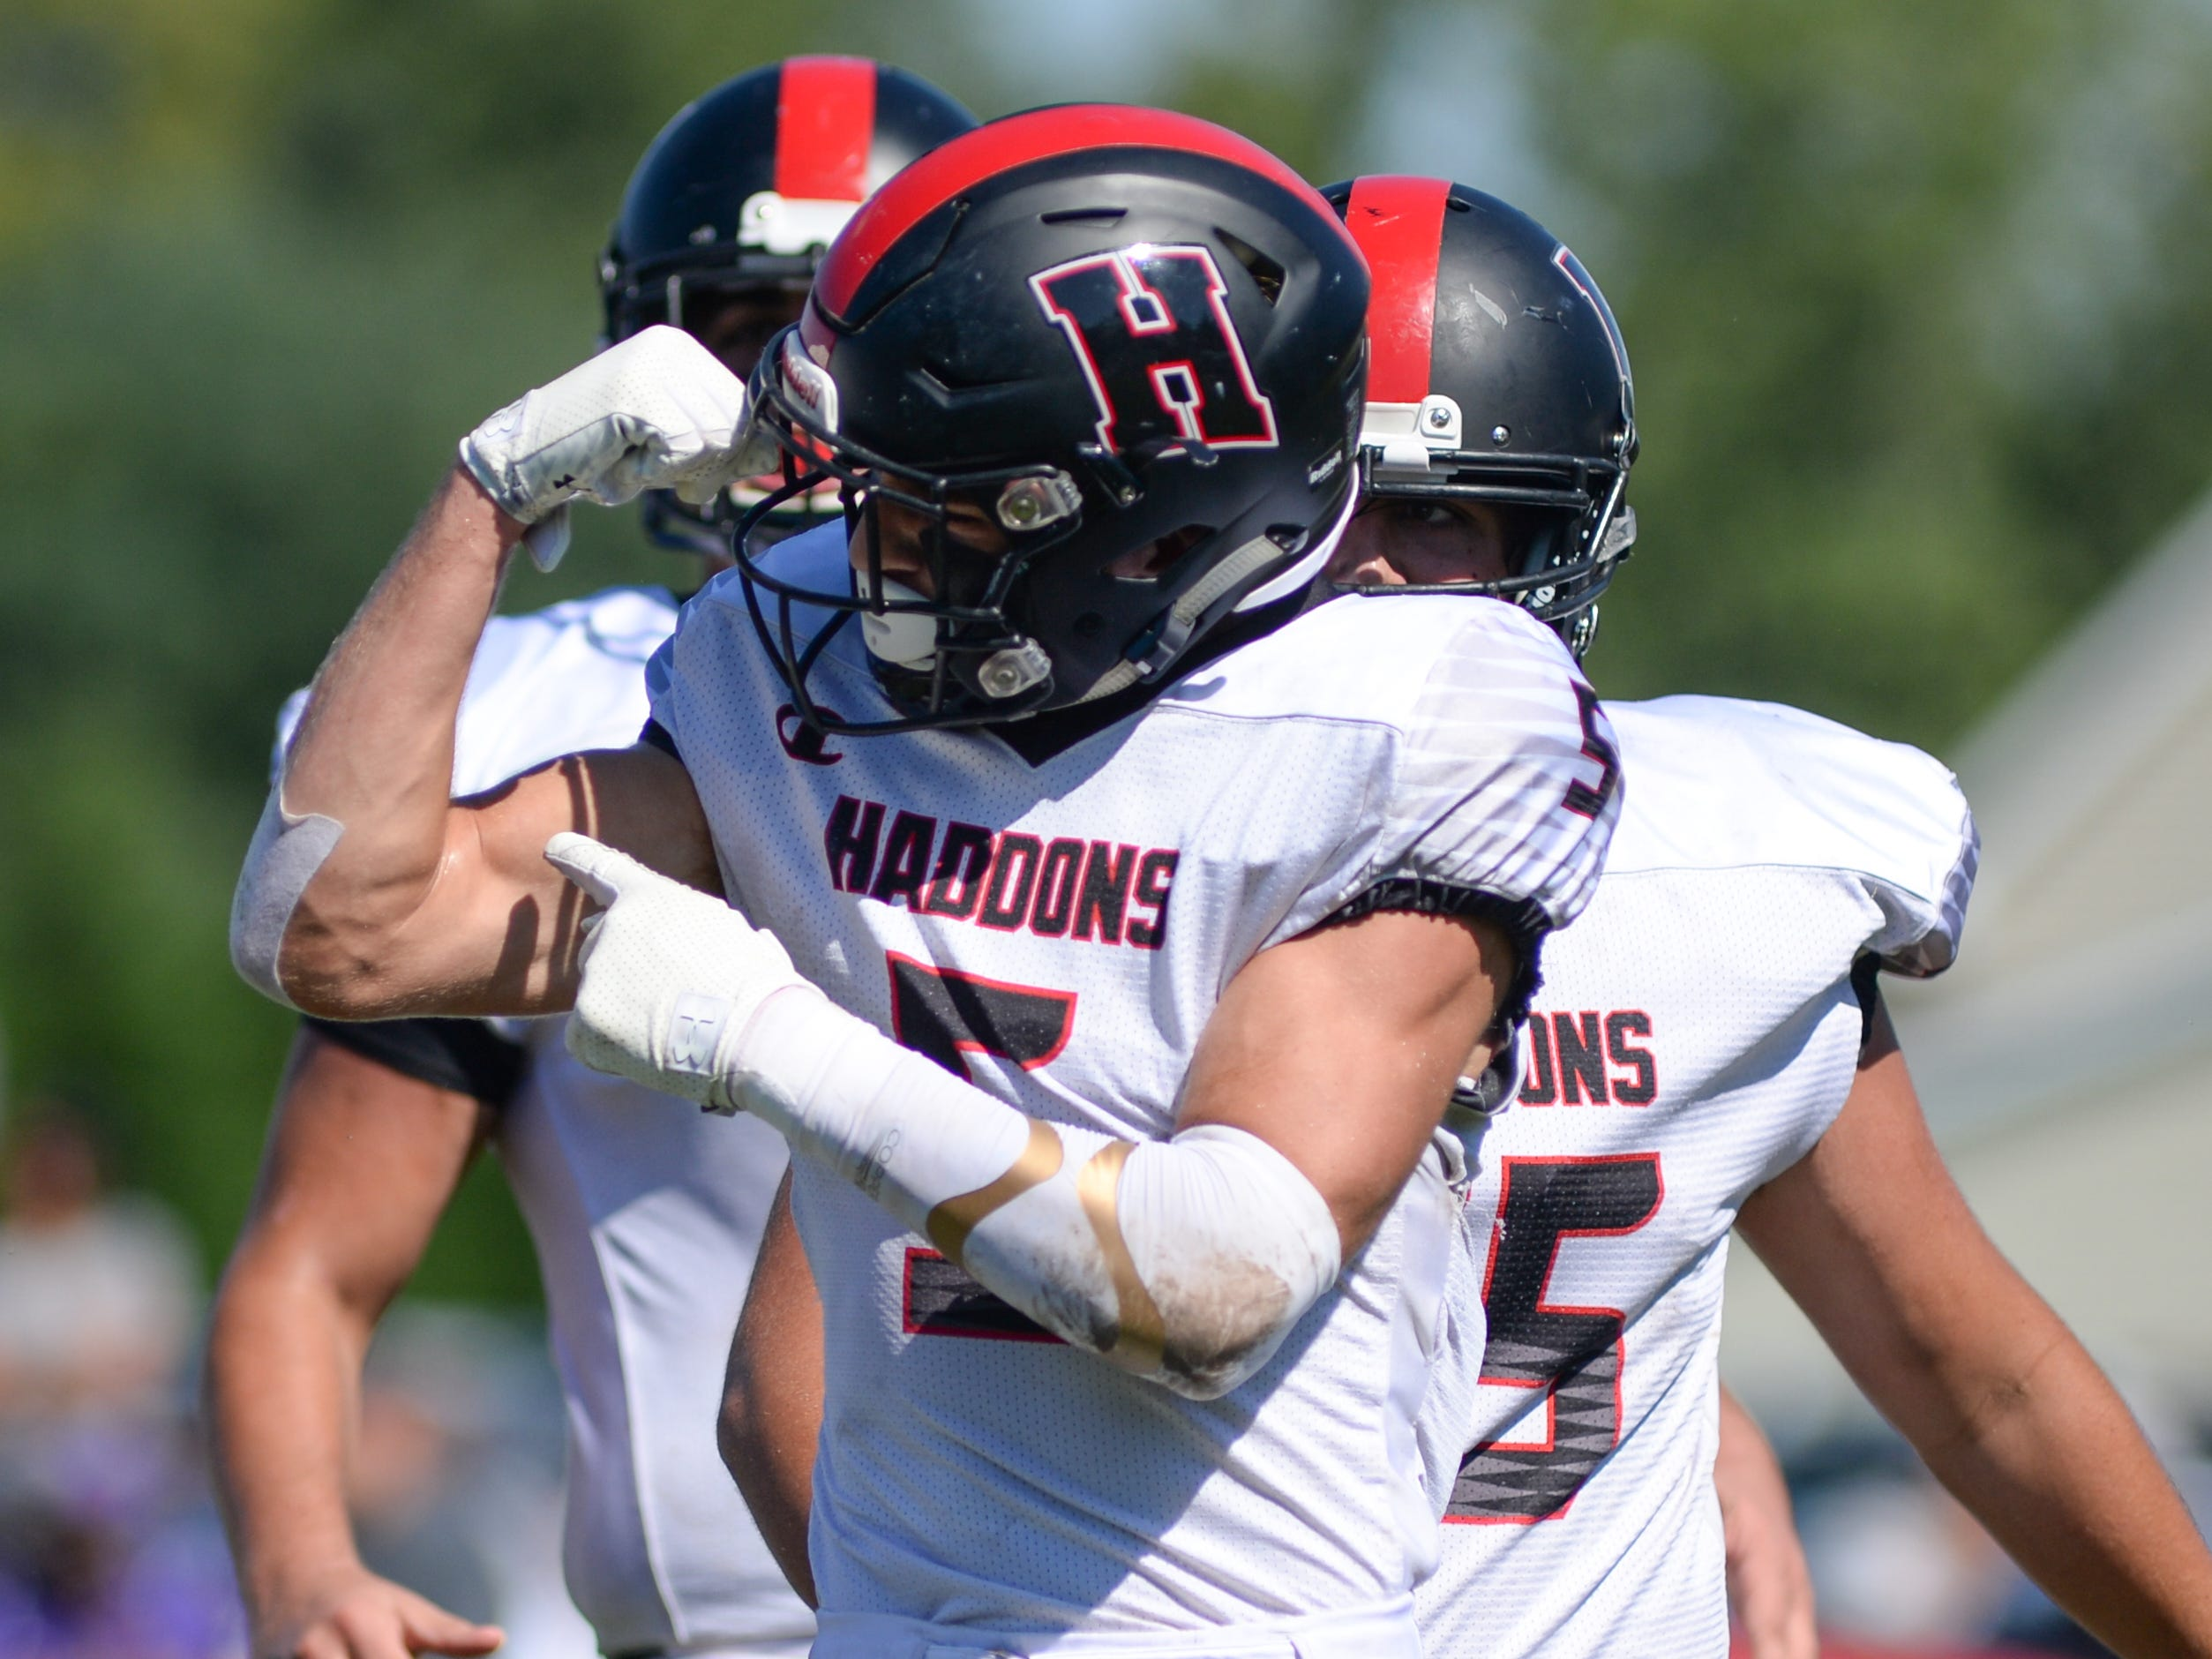 Haddonfield's Johnny Foley (5) celebrates after scoring a touchdown during the first half of Saturday's game against St. Joseph, Sept. 29, 2018.